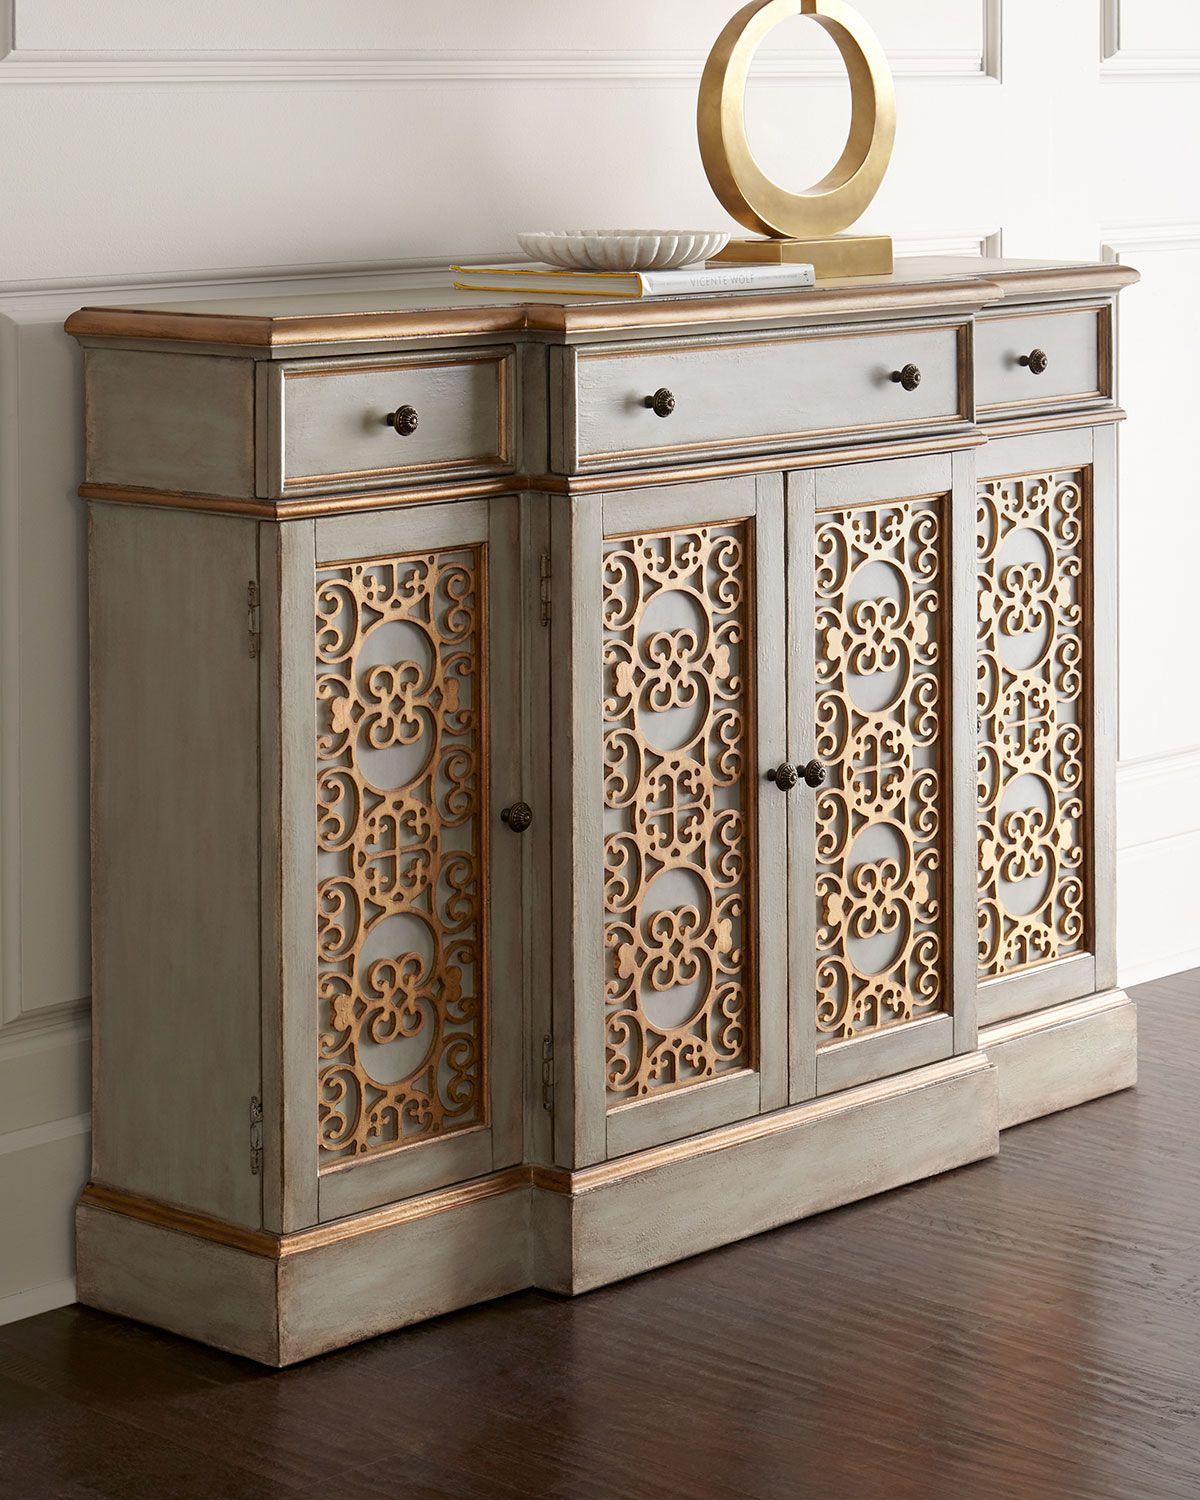 Sideboard Features Intricate Doors Adorned With Scrolled intended for Stillwater Sideboards (Image 23 of 30)